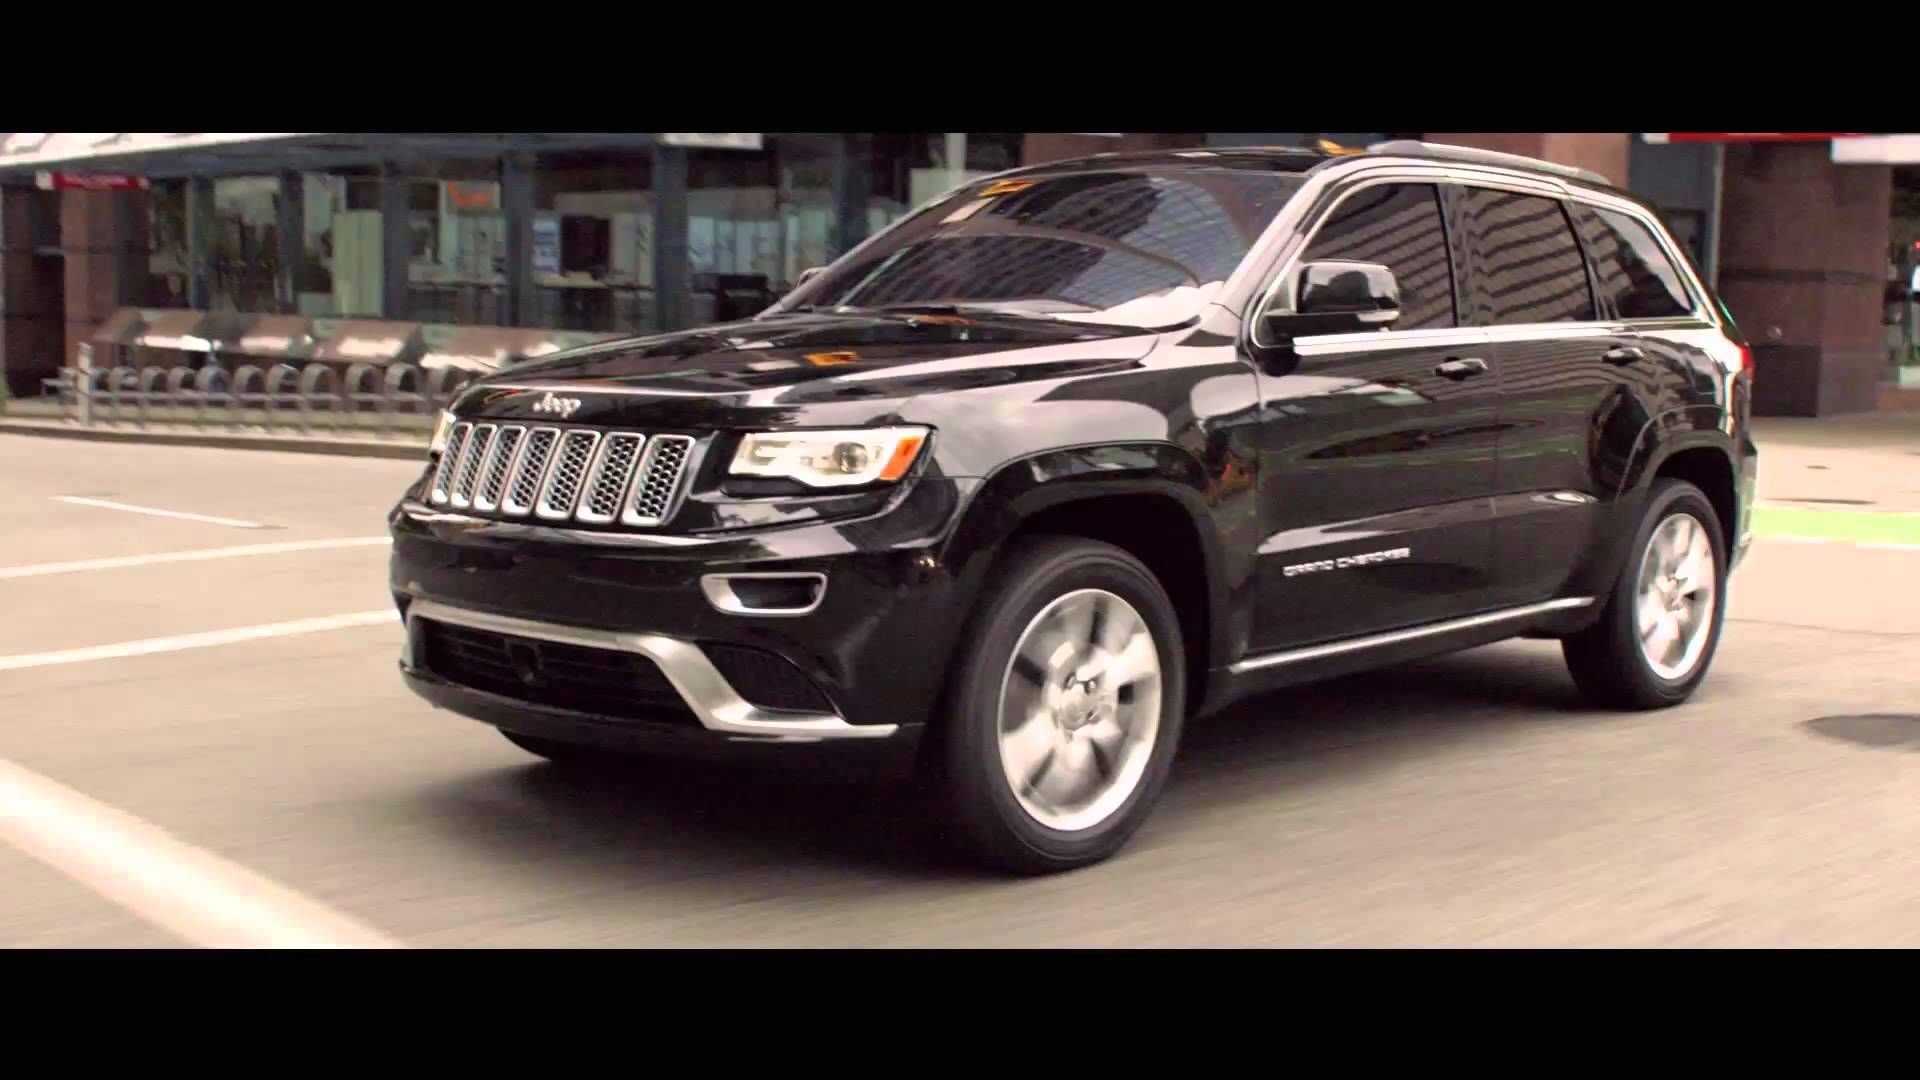 Adventure Is Found In The Dna Of Every Jeep Vehicle With The Jeep Grand Cherokee You Can Find The Perfect Escape Wan Jeep Grand Cherokee Chrysler Jeep Jeep